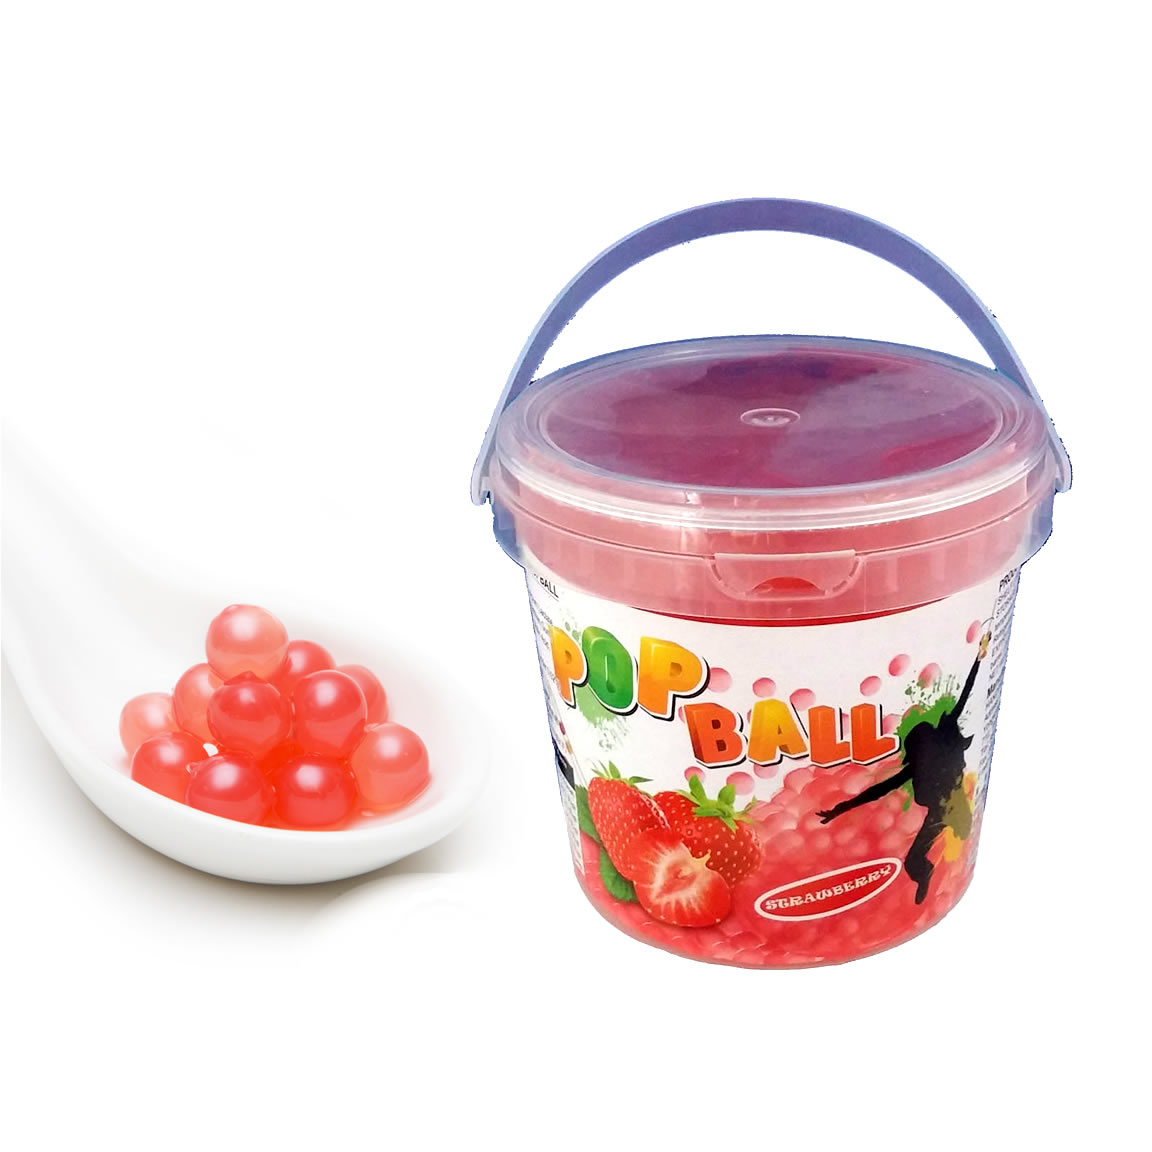 Pop Ball (1.2kg)